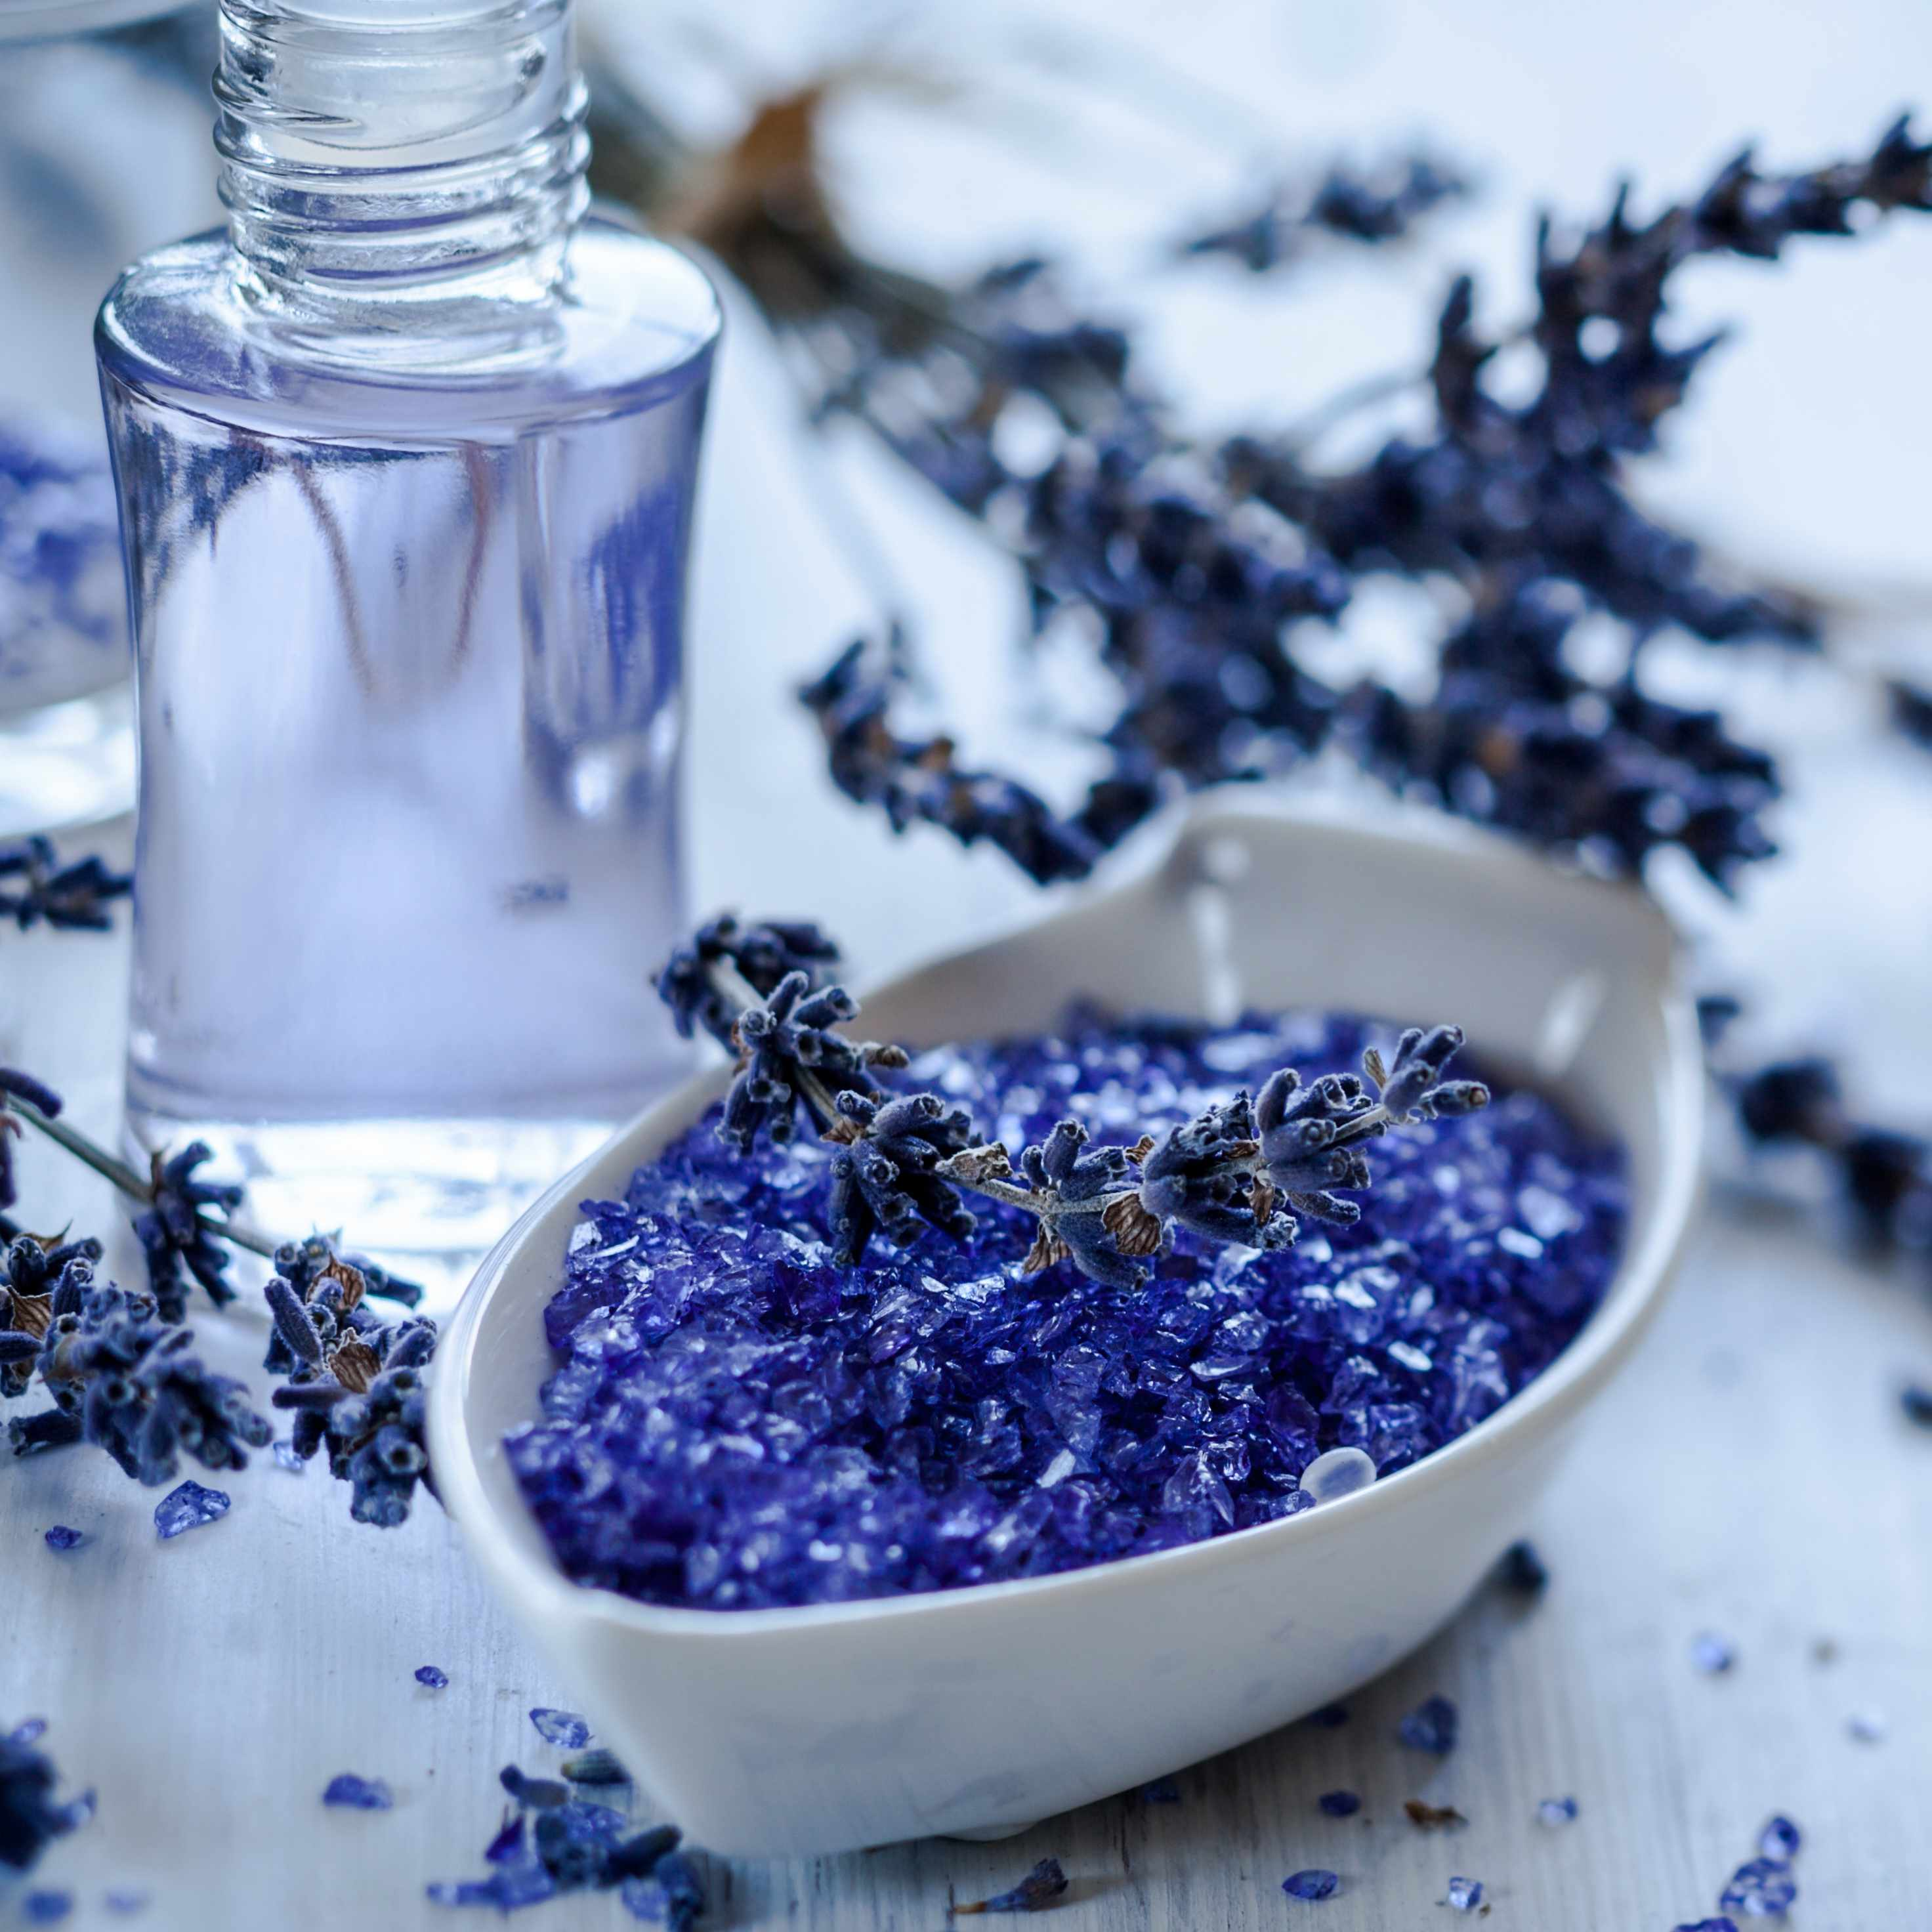 dried lavender flowers with a bottle of essential oils